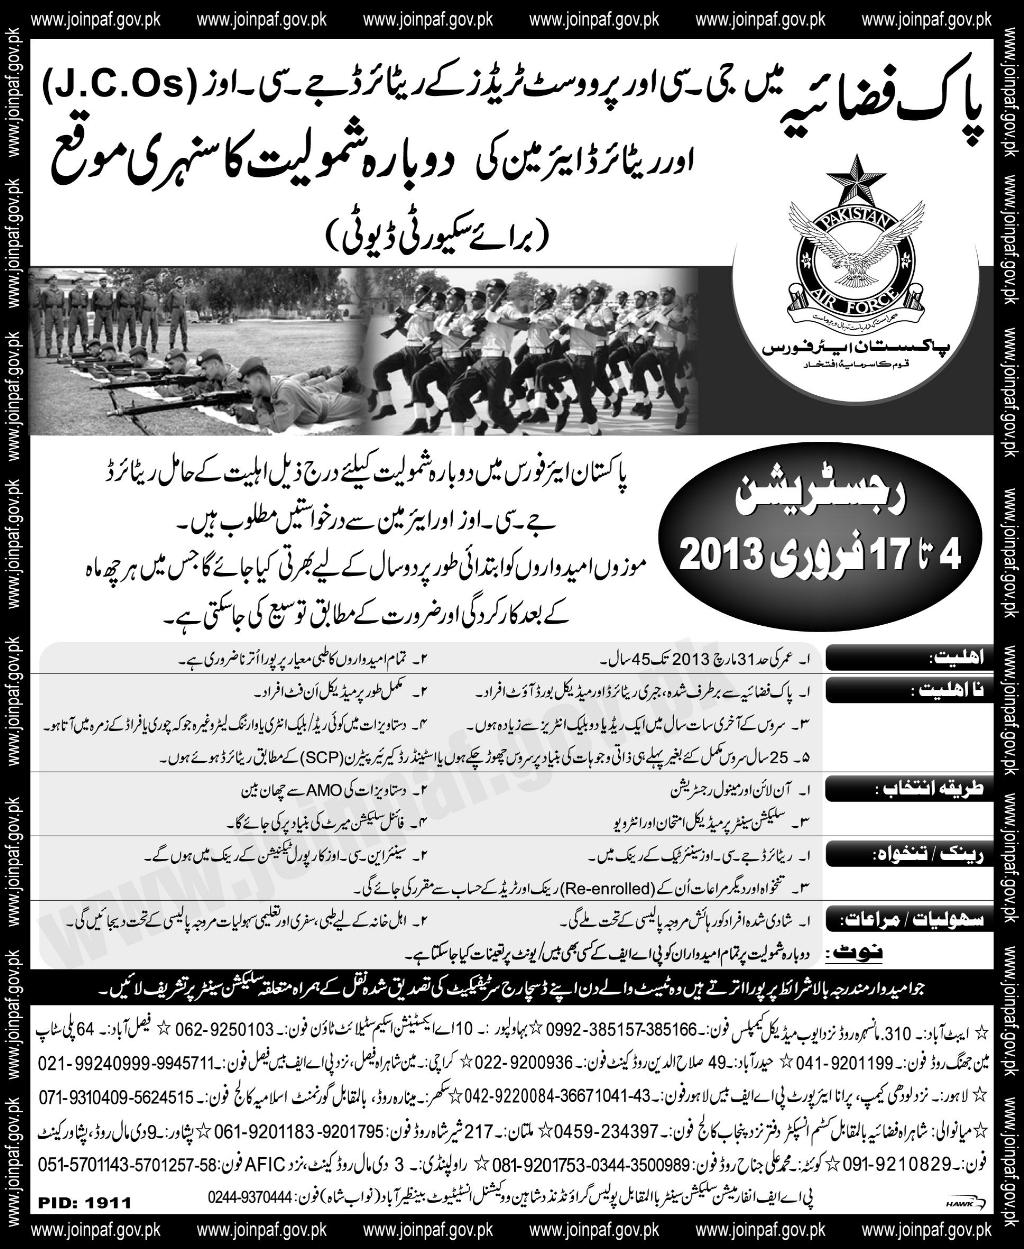 Jobs in Pakistan Air Force 2013 for Retired JCO/Airmen of GC & Provost Trade